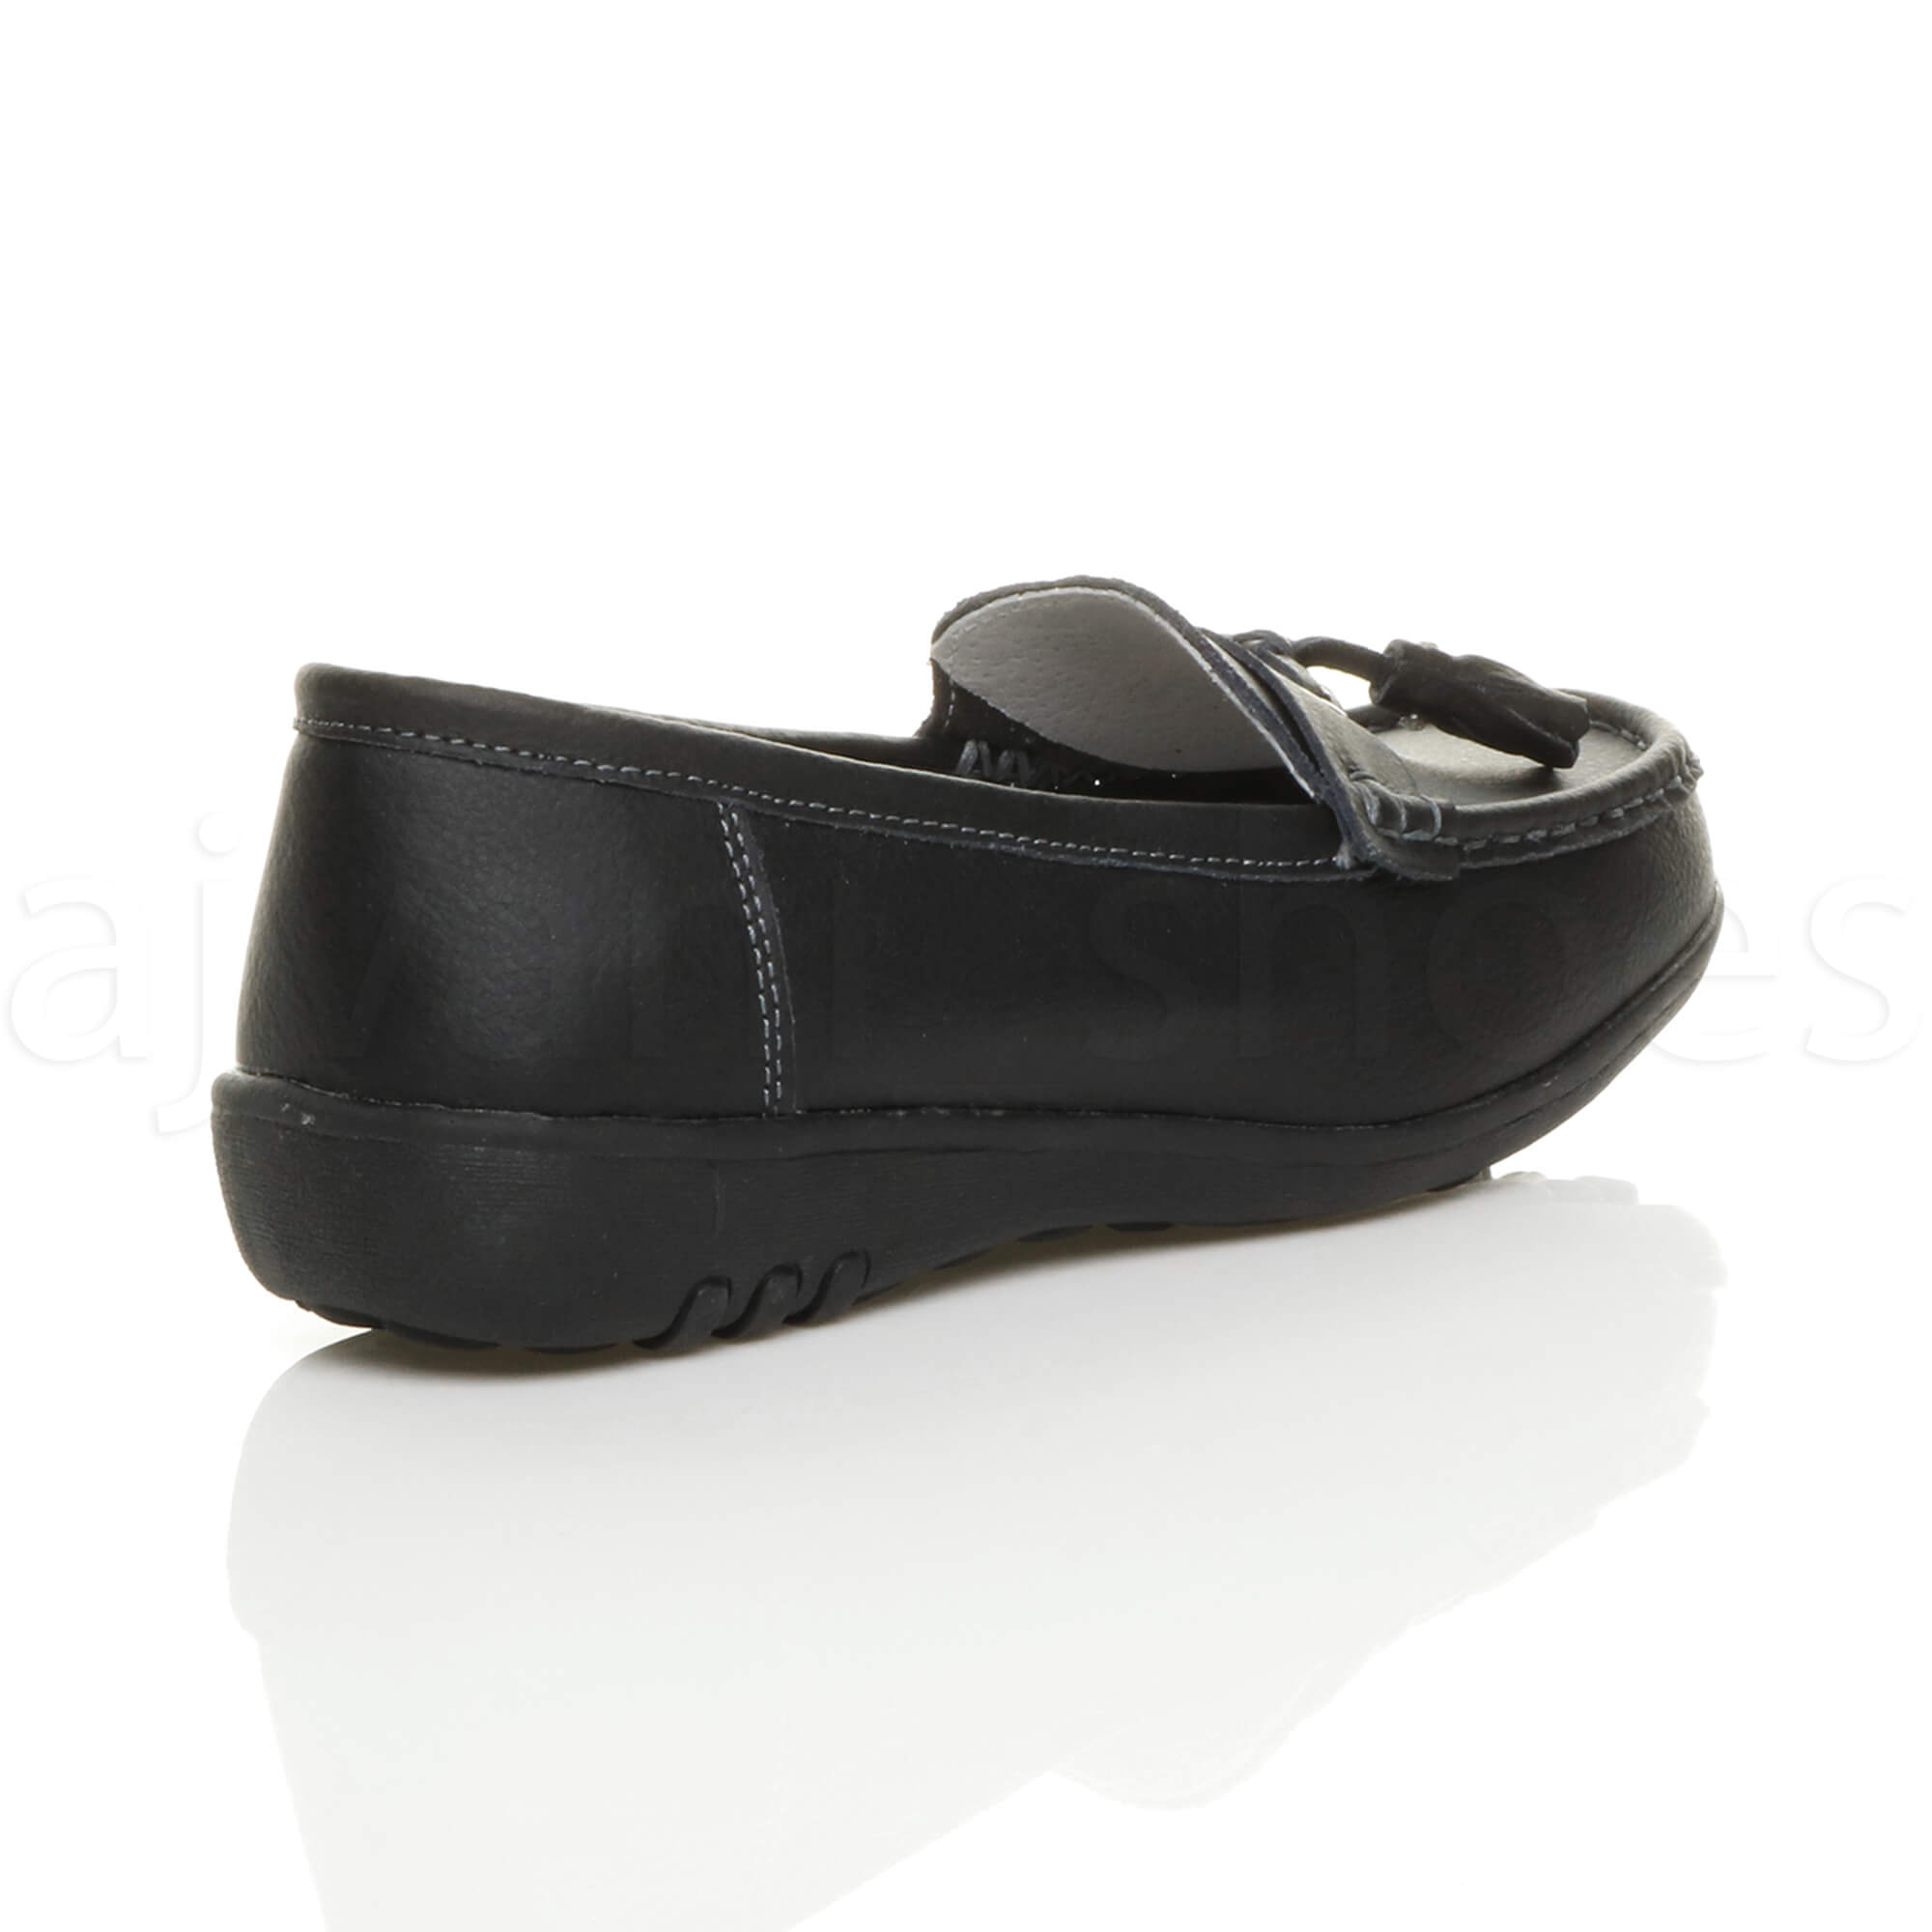 WOMENS-LADIES-LOW-HEEL-WEDGE-LEATHER-TASSEL-LOAFERS-COMFORT-MOCCASINS-SHOES-SIZE thumbnail 13